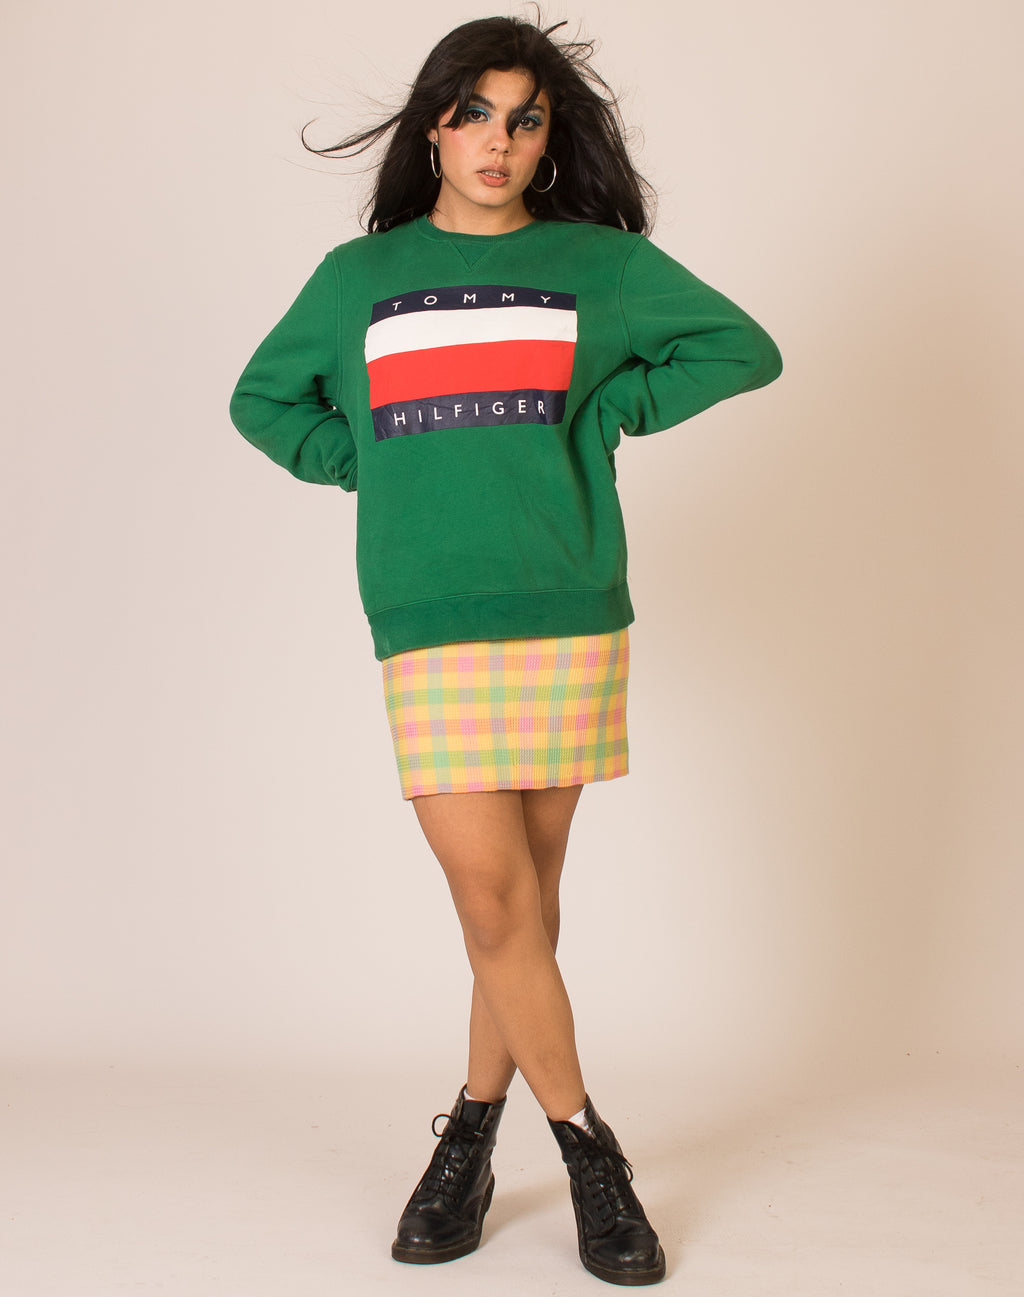 TOMMY HILFIGER GREEN SWEATSHIRT